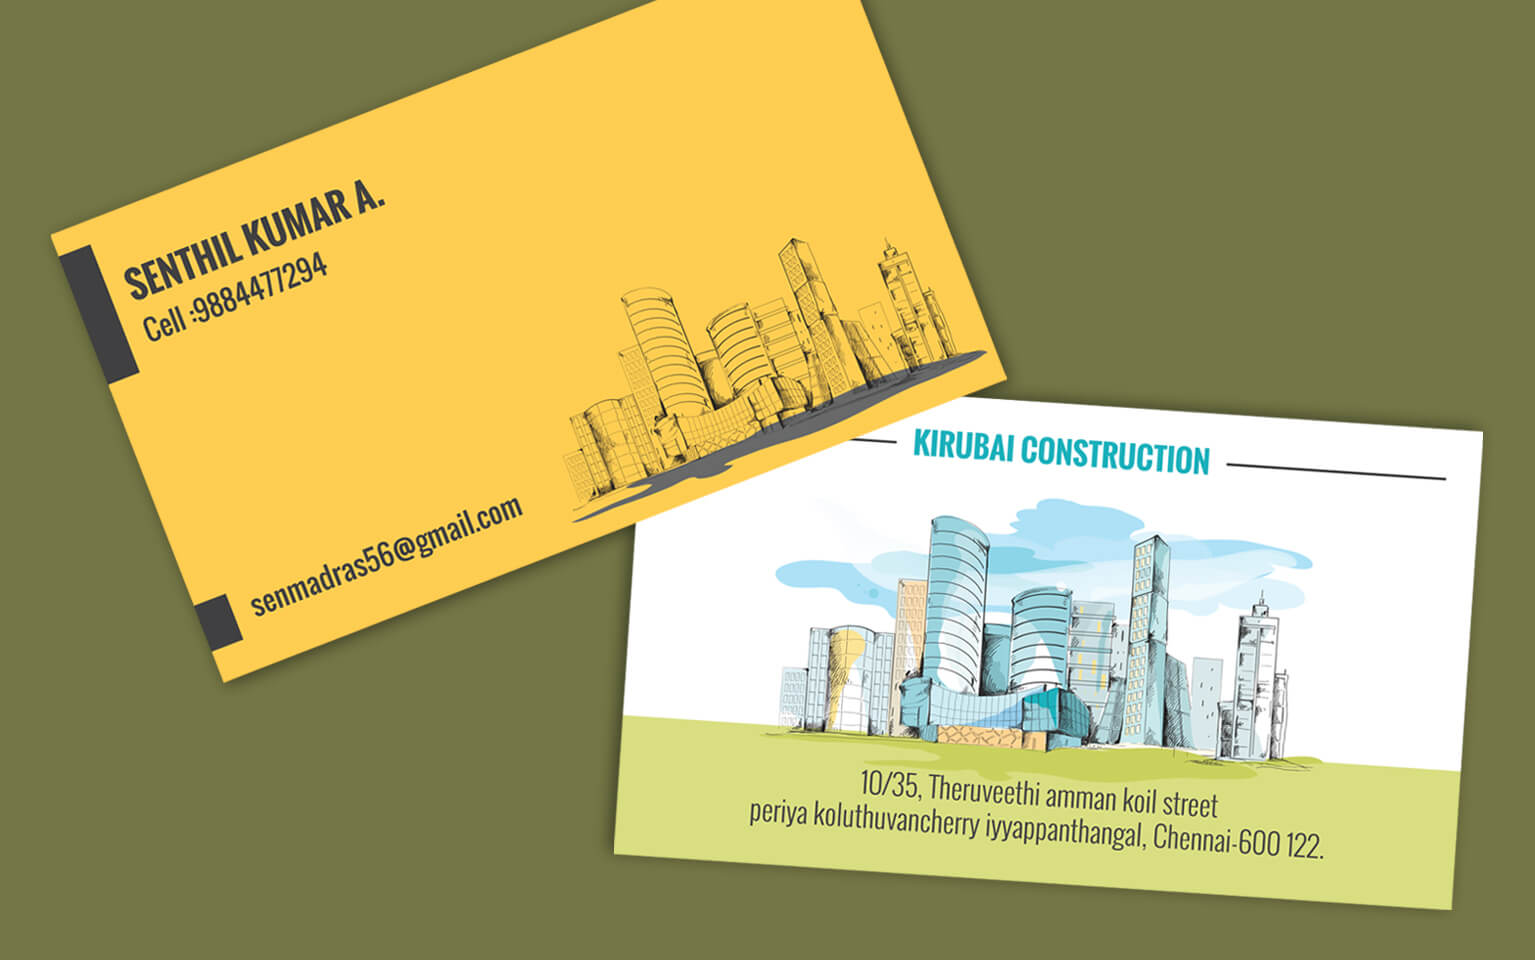 Contractor visiting card format - Business cards for builders